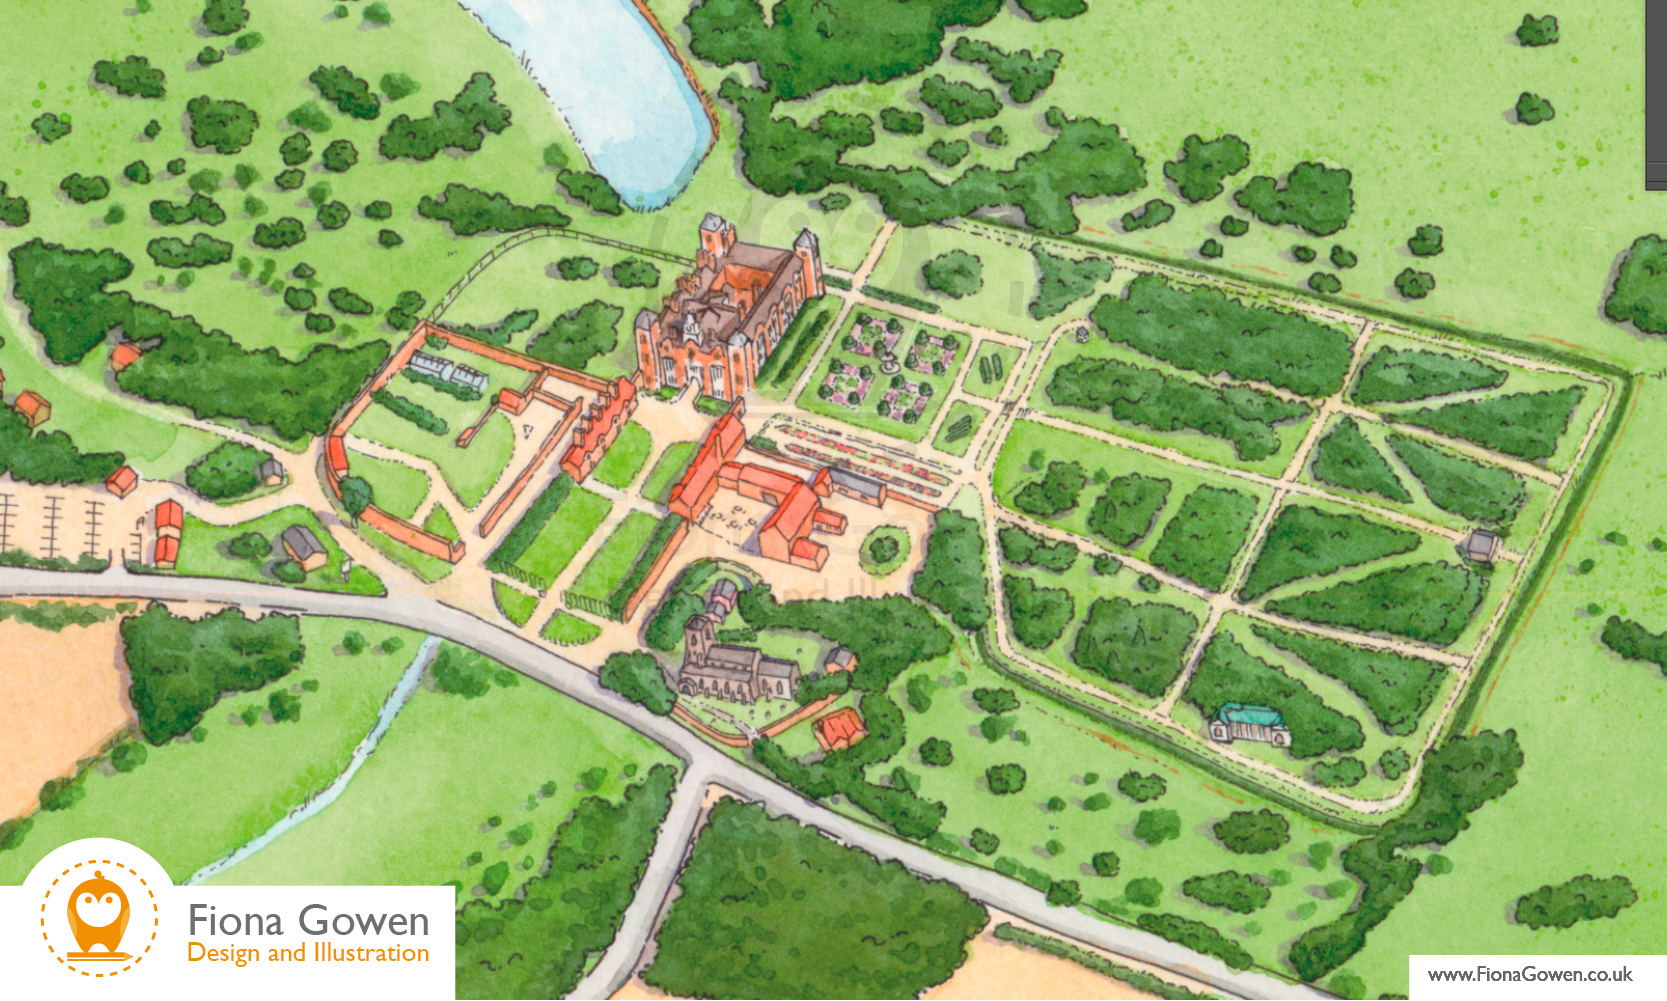 National Trust Blickling hall, Illustrated visitor map by Fiona Gowen. Cropped in to show the Hall and Gardens